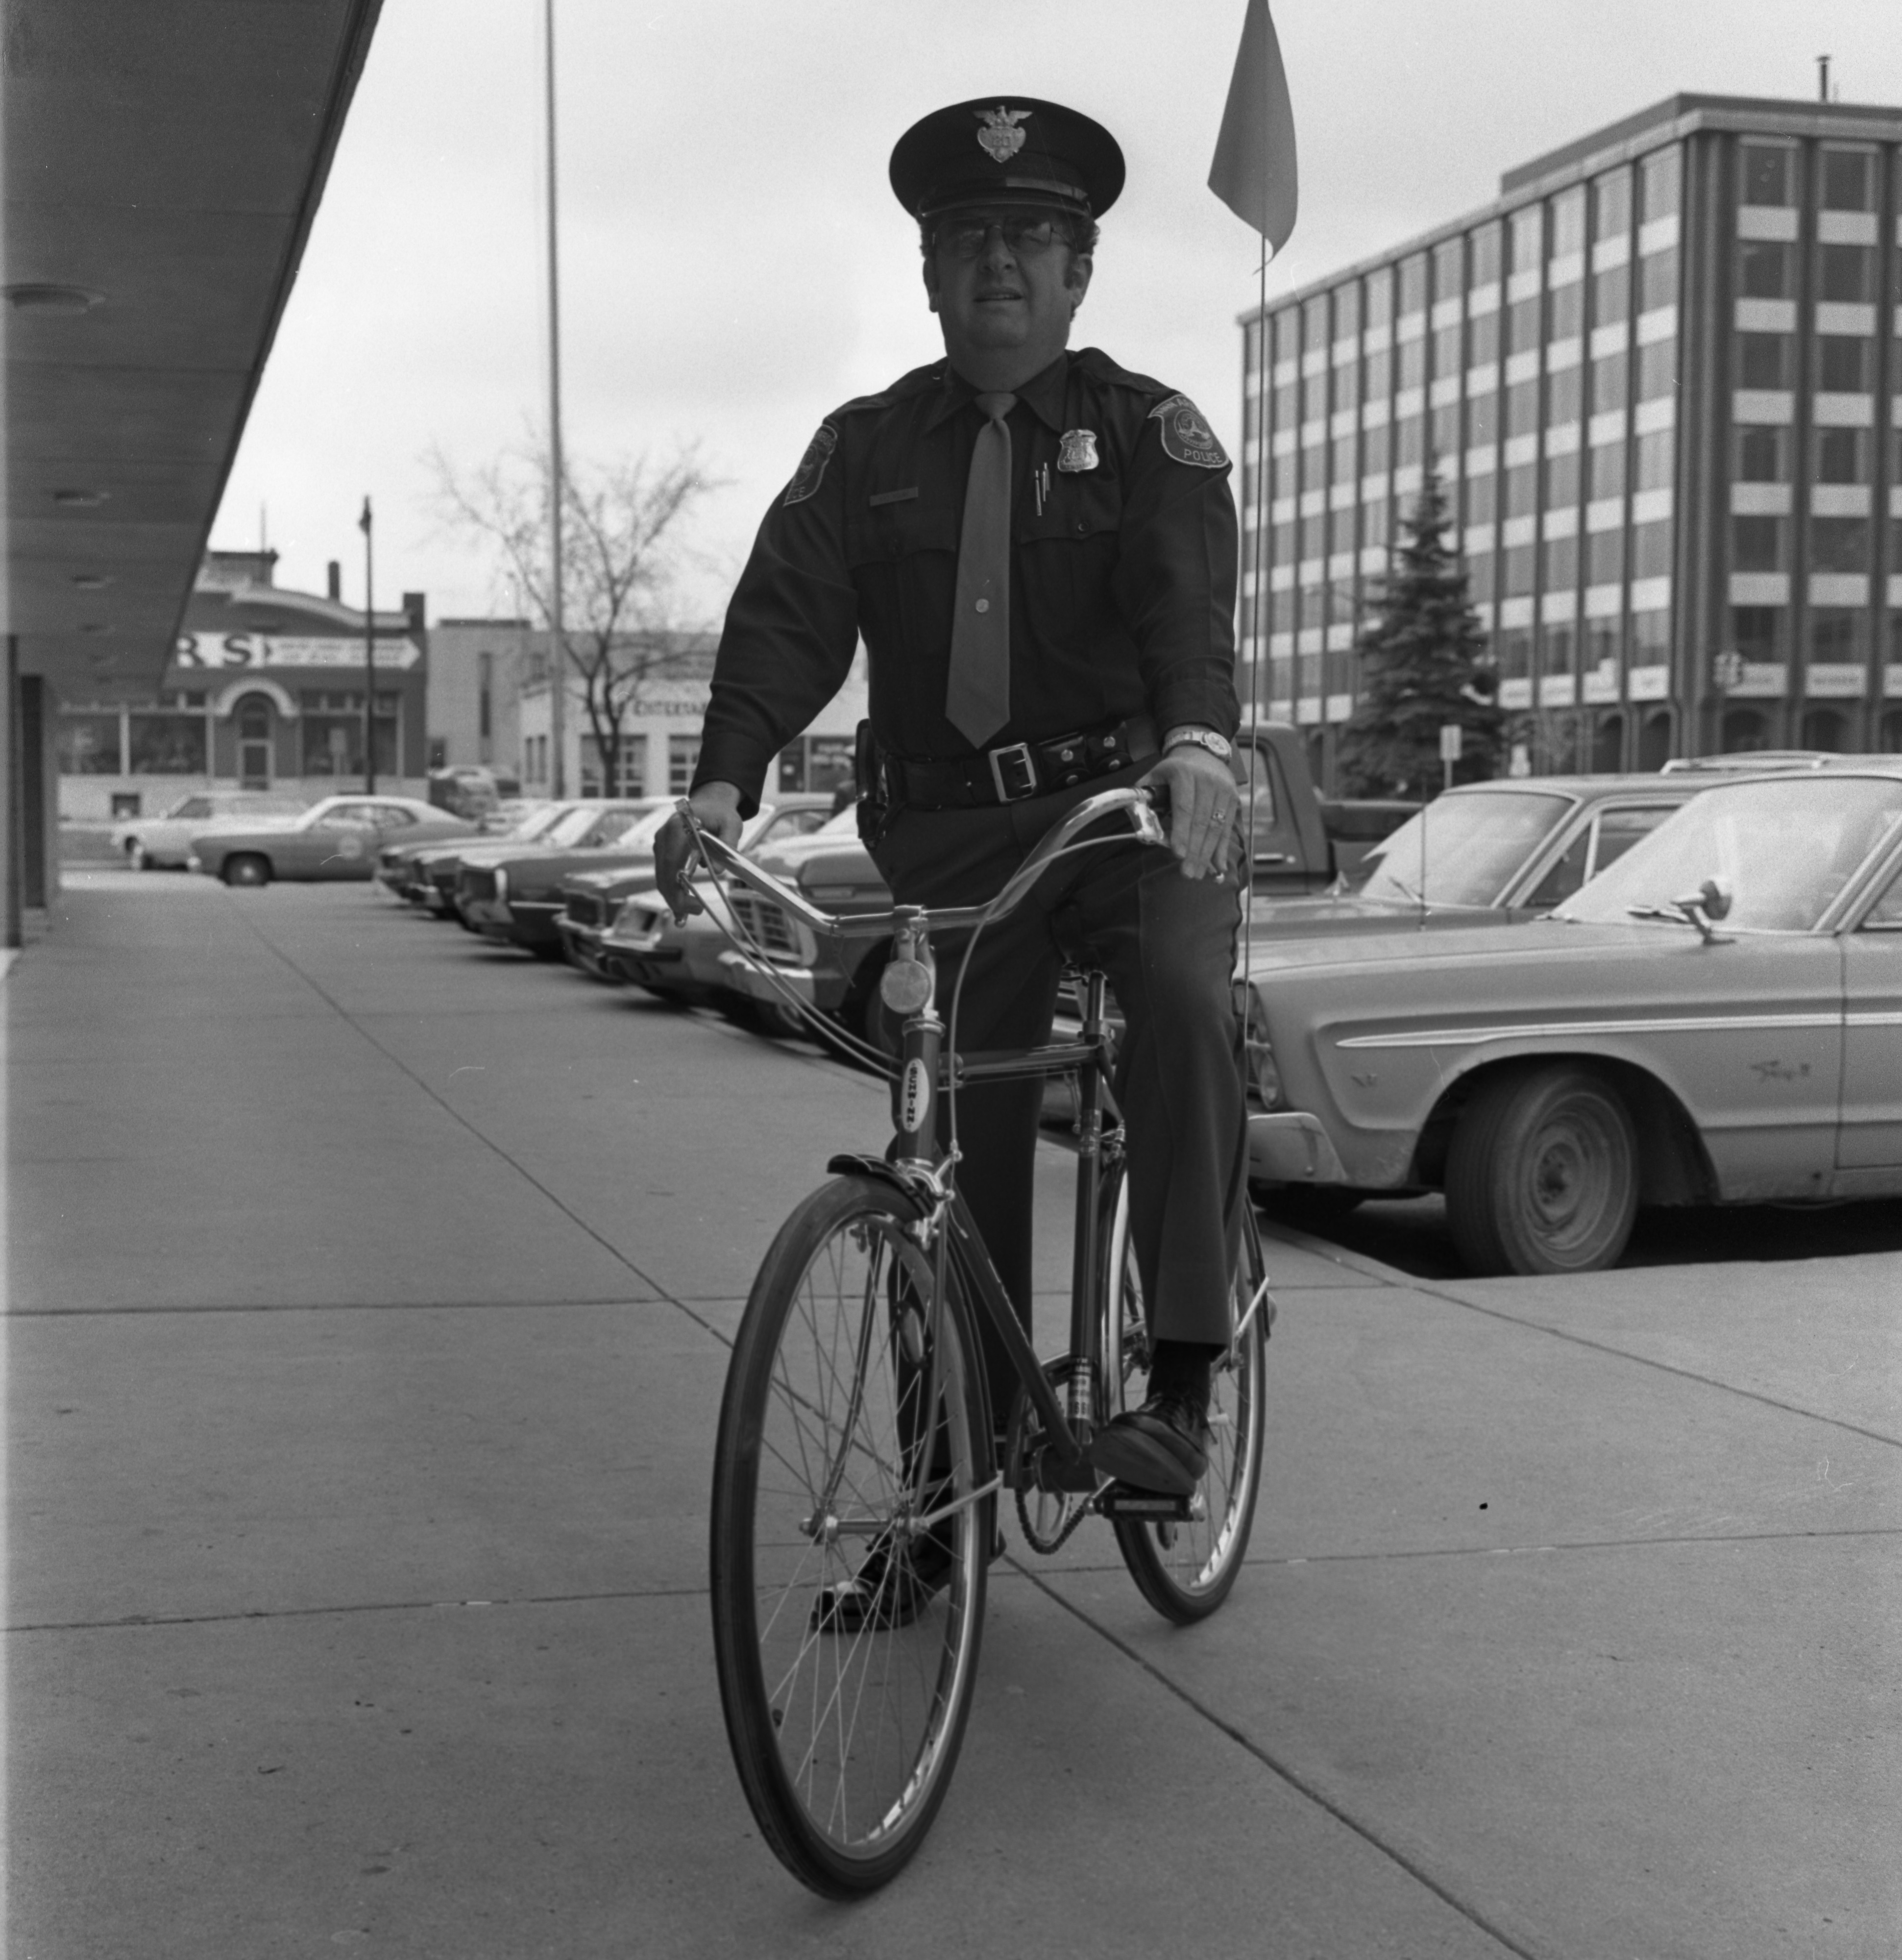 Ann Arbor Police Officer Pat Nolan On Bike Outside City Hall, May 1975 image